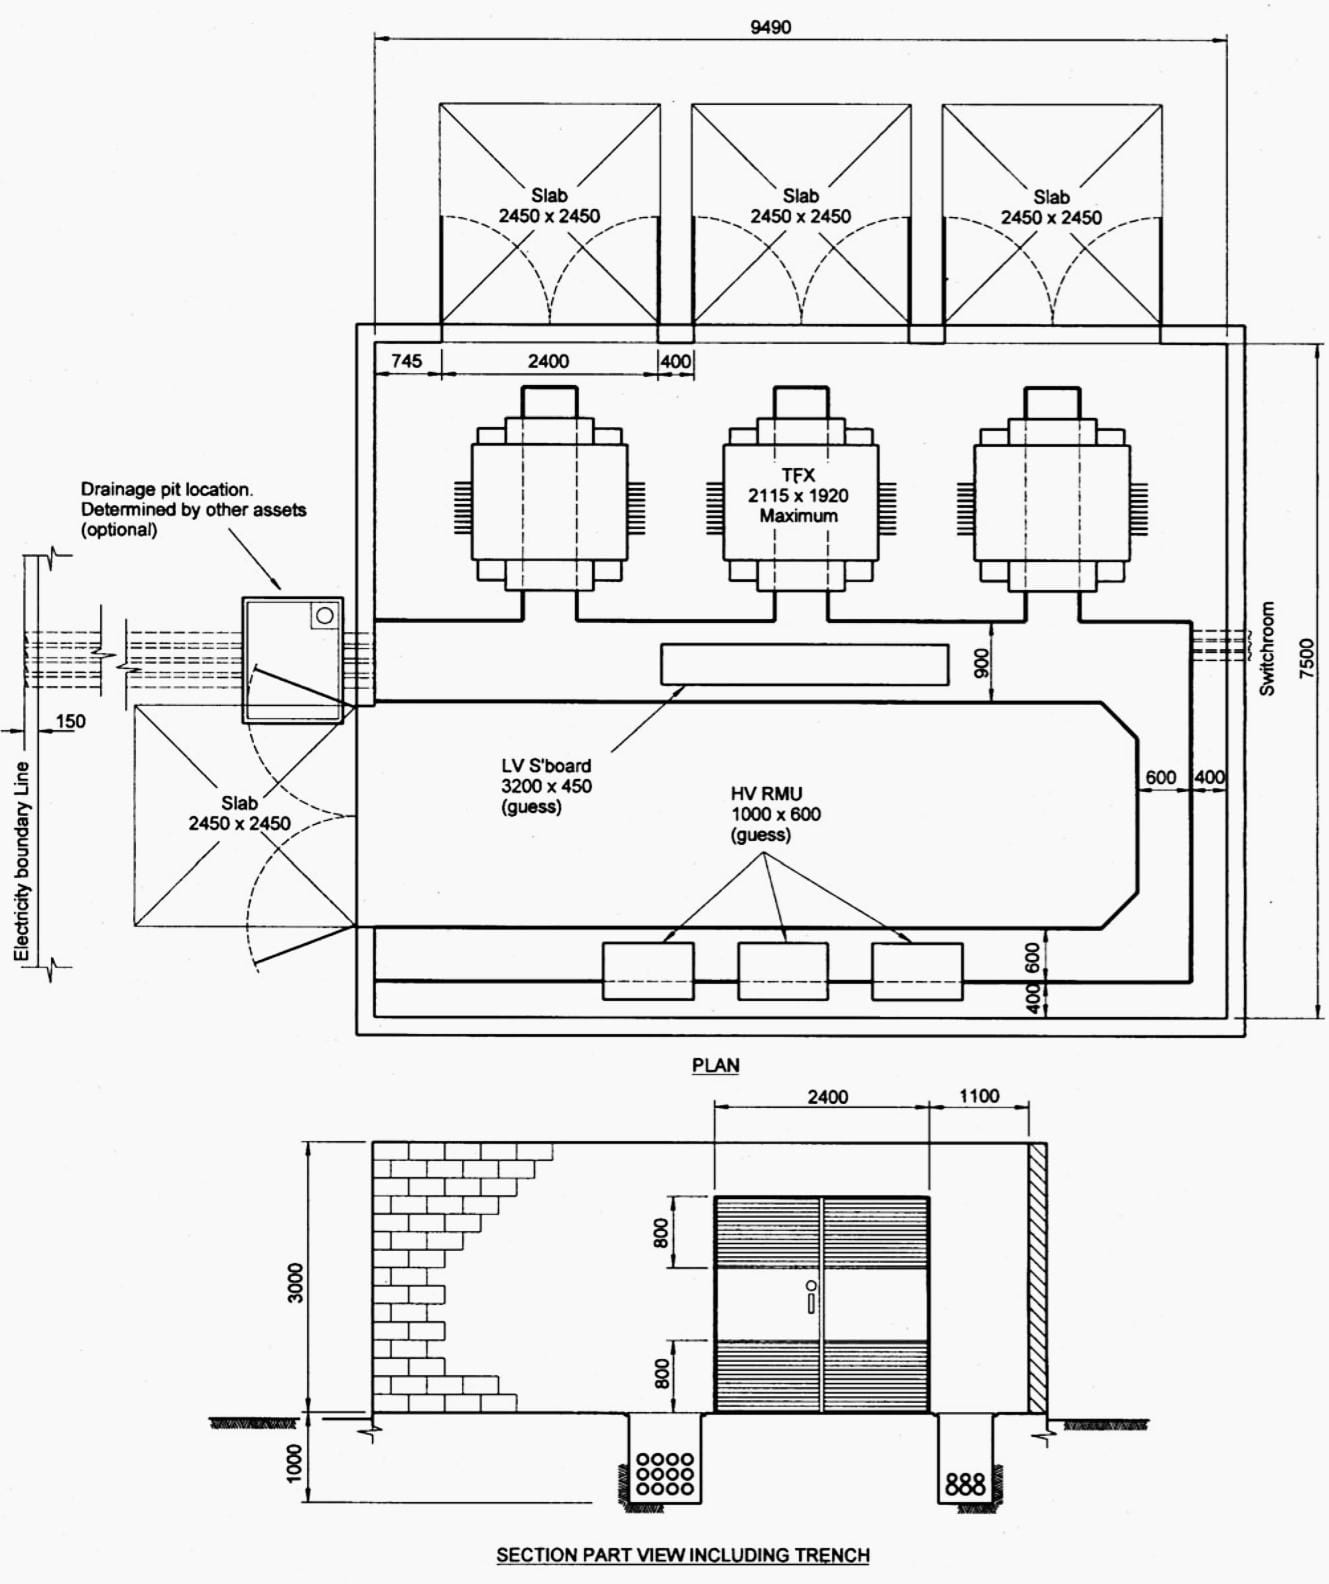 Indoor distribution substation layout with 3 transformers, EMF containment and more than 1 external wall